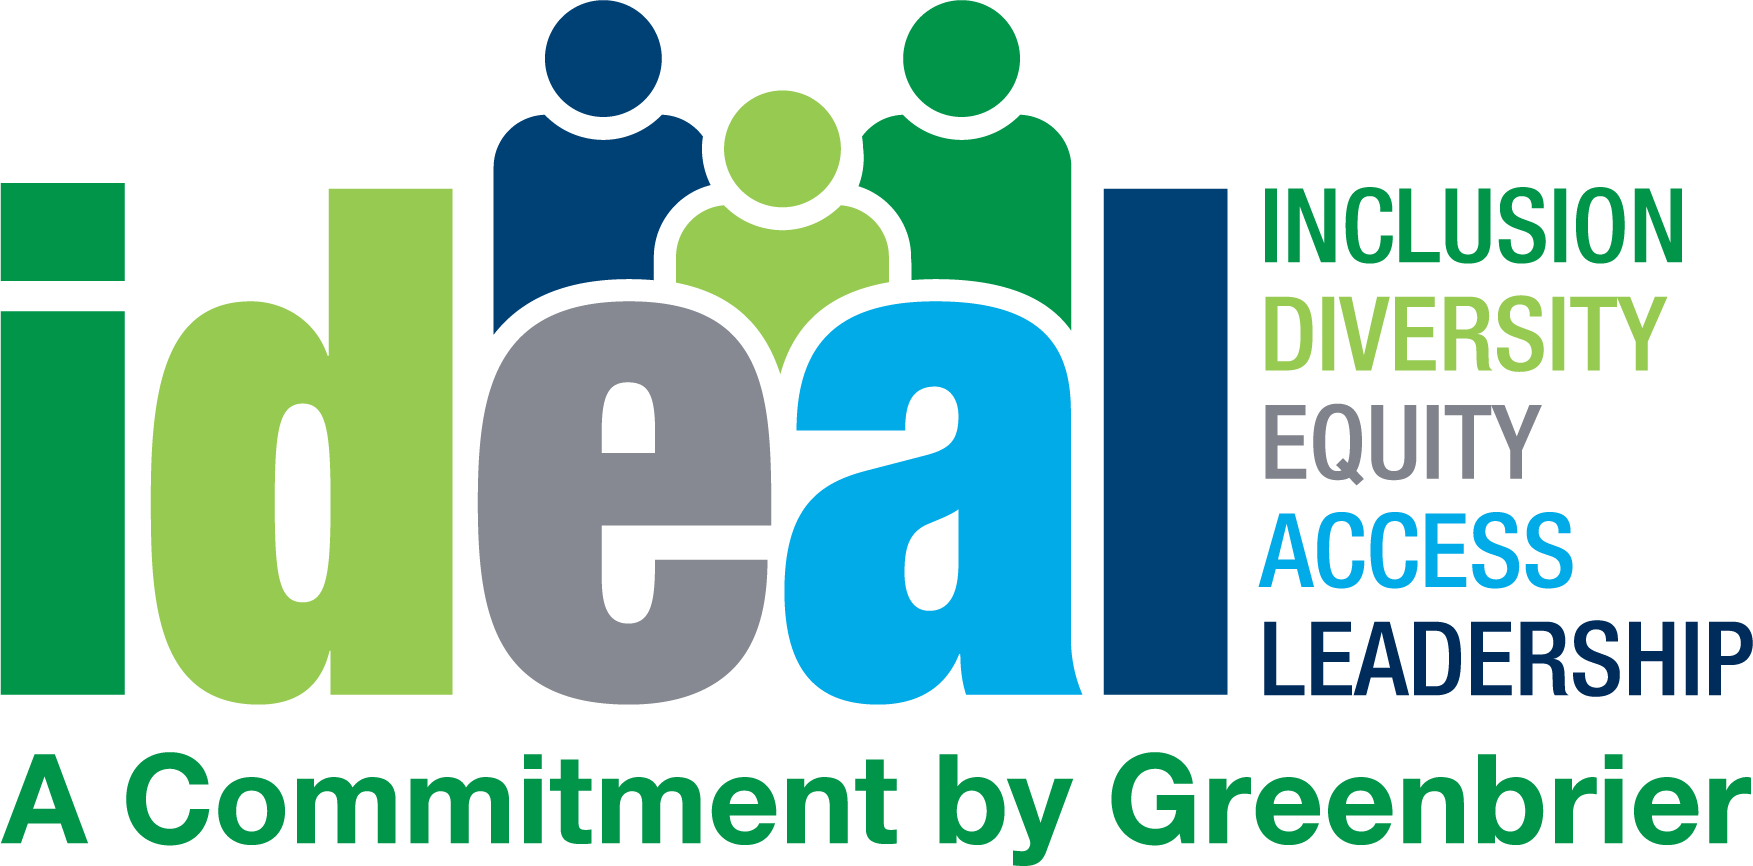 Ideal: inclusion, diversity, equity, access, leadership